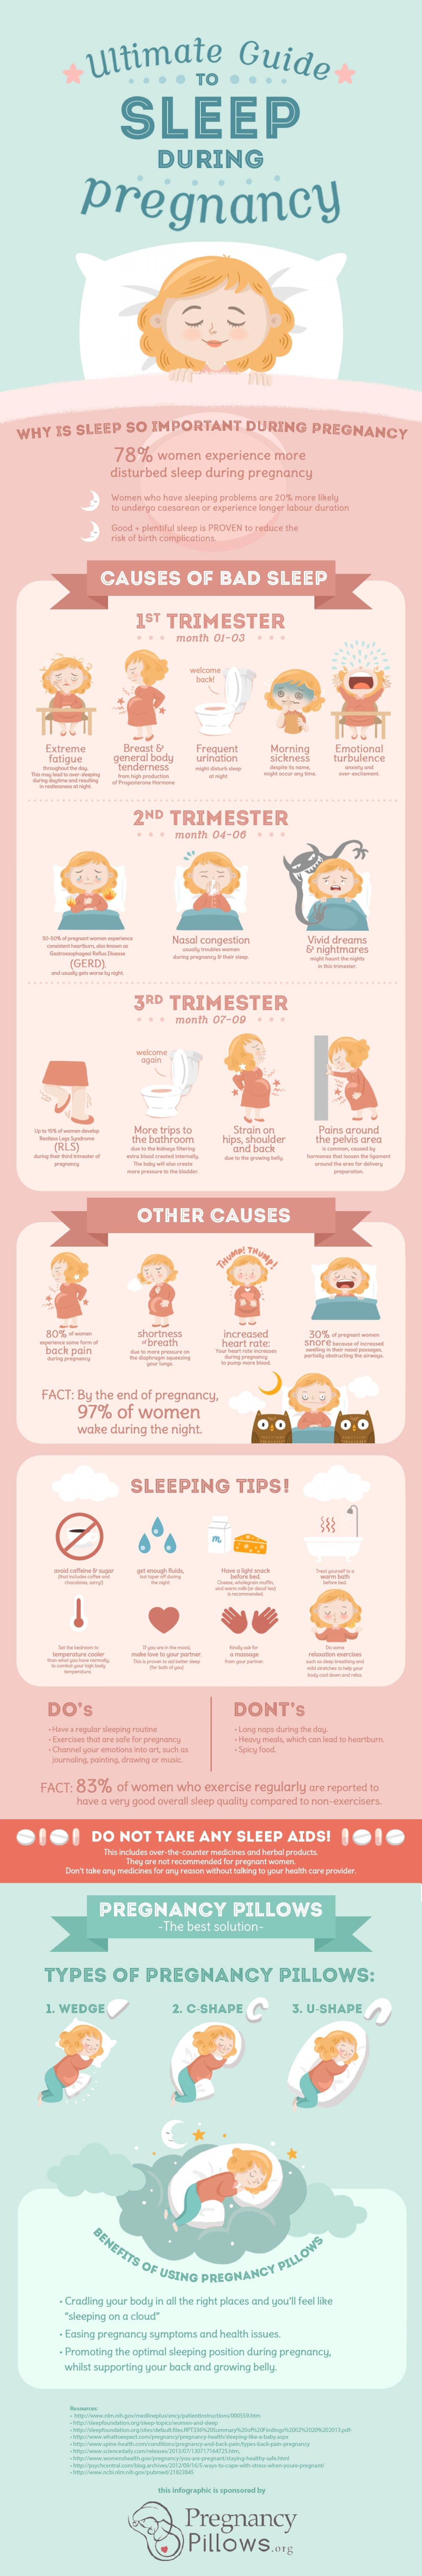 infographic: ultimate guide to sleep during pregnancy (visual.ly)